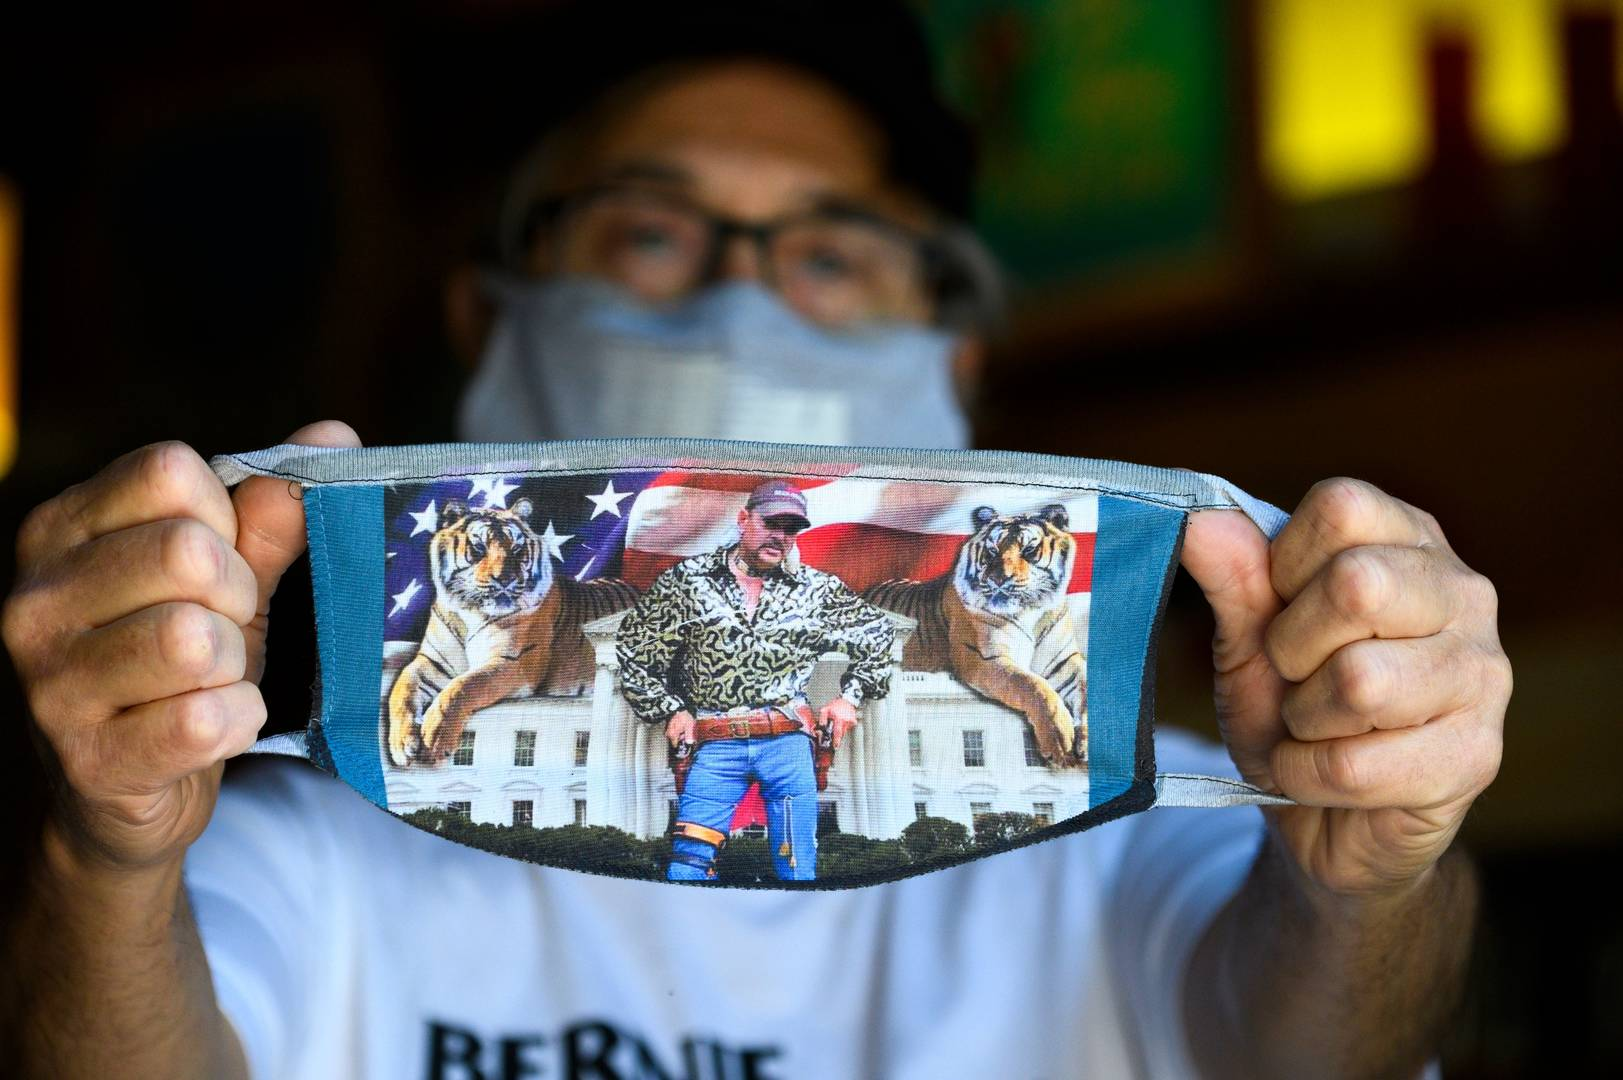 Bill Wyatt, owner of the Y Que Trading Post in the Los Feliz neighborhood of Los Angeles, holds one of his creations, a Tiger King mask, in his shop during the novel coronavirus COVID-19 pandemic on April 23, 2020